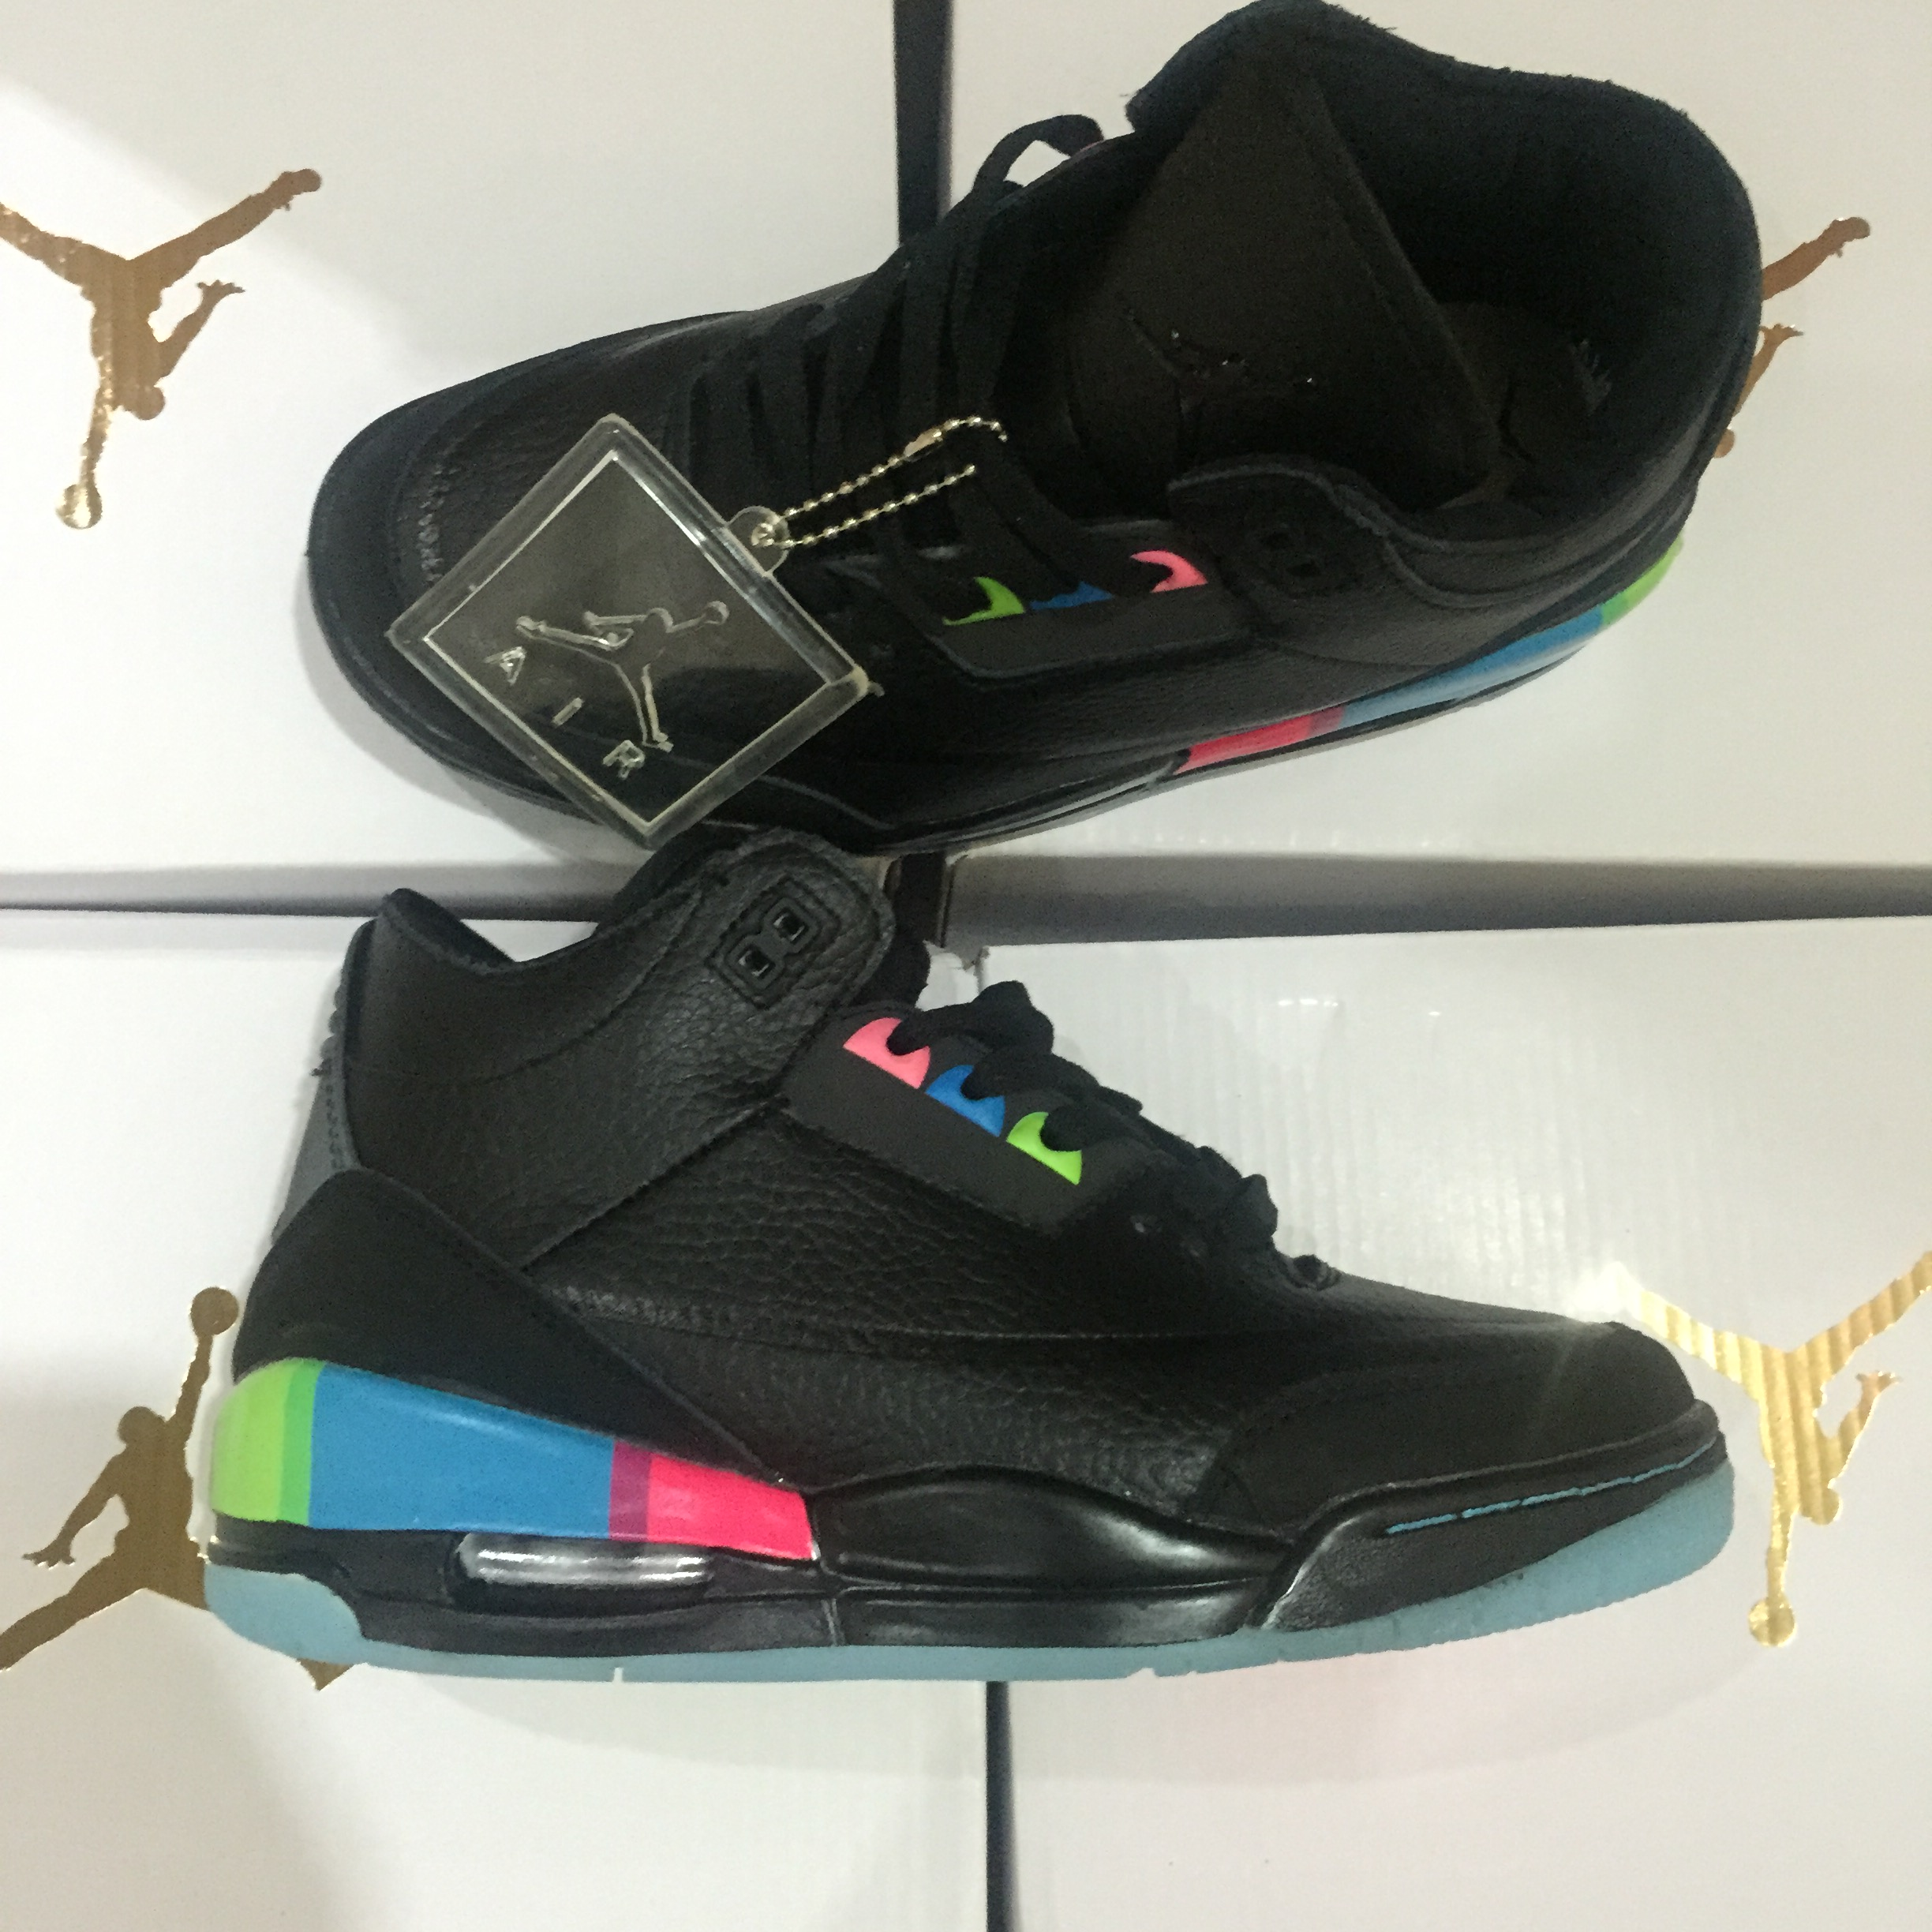 New Air Jordan 3 Black Rianbow Shoes